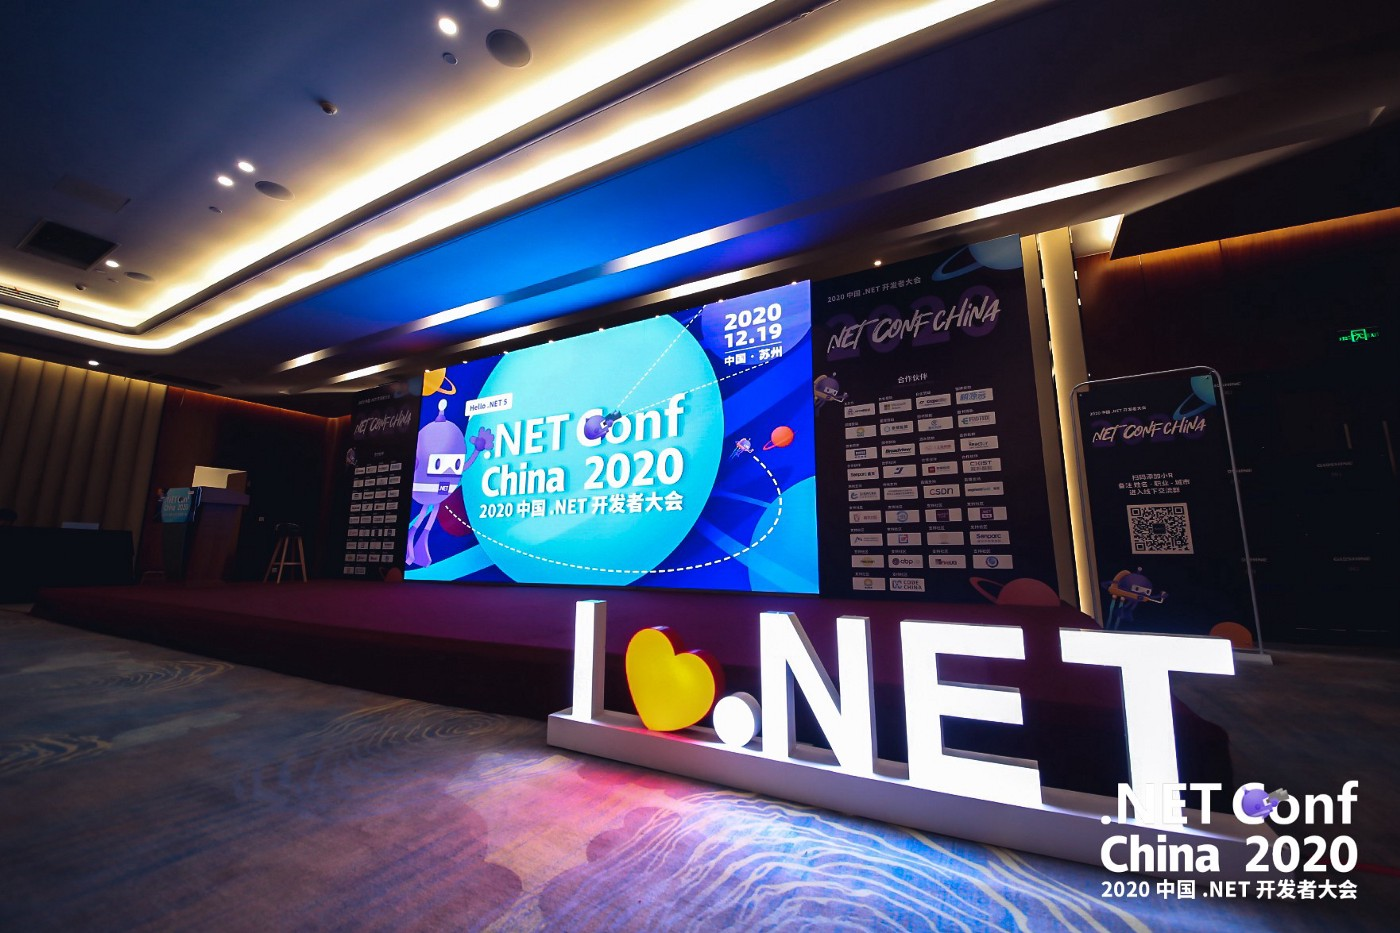 dotnet conf china.jpeg